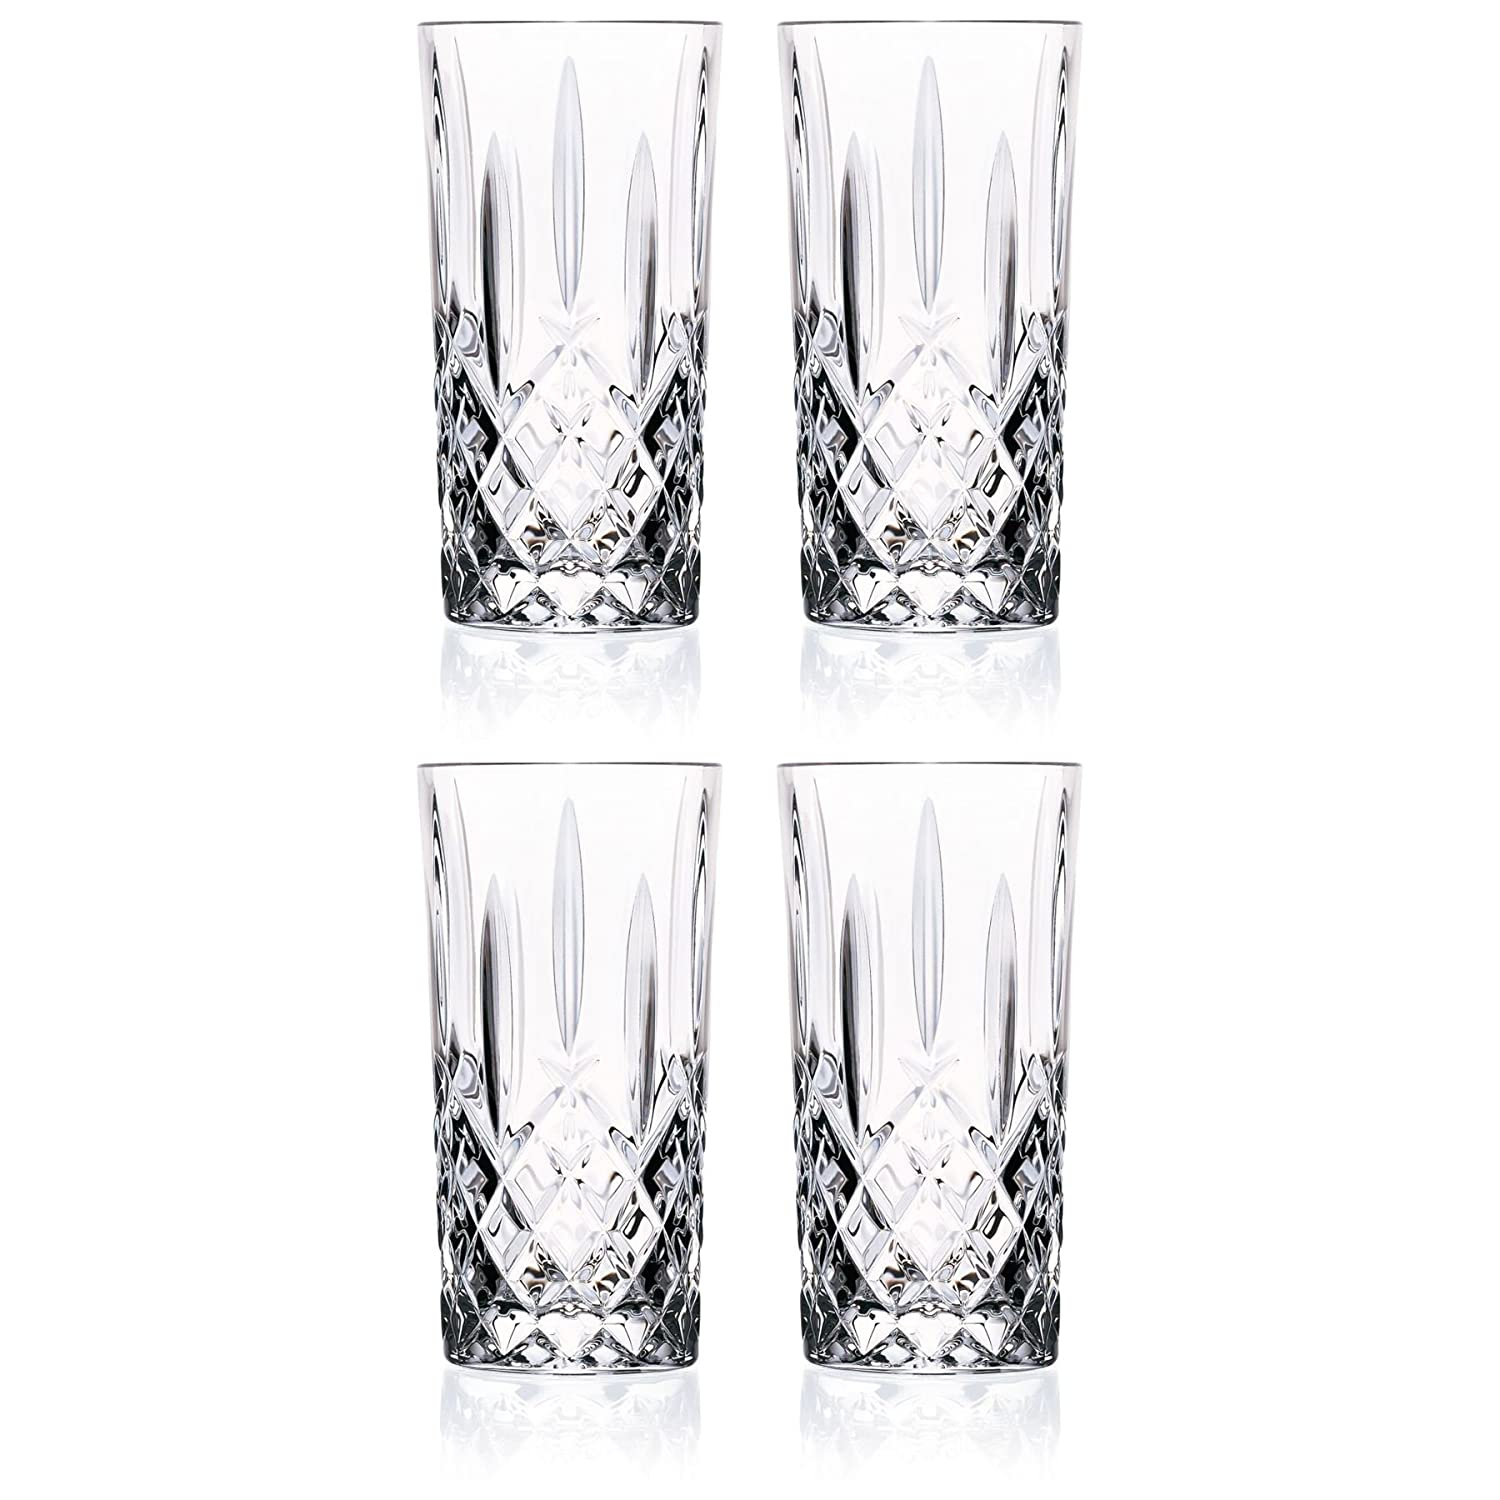 RCR Crystal Orchestra Crystal Hiball Glasses - 396ml (13.5oz) Set Of 4